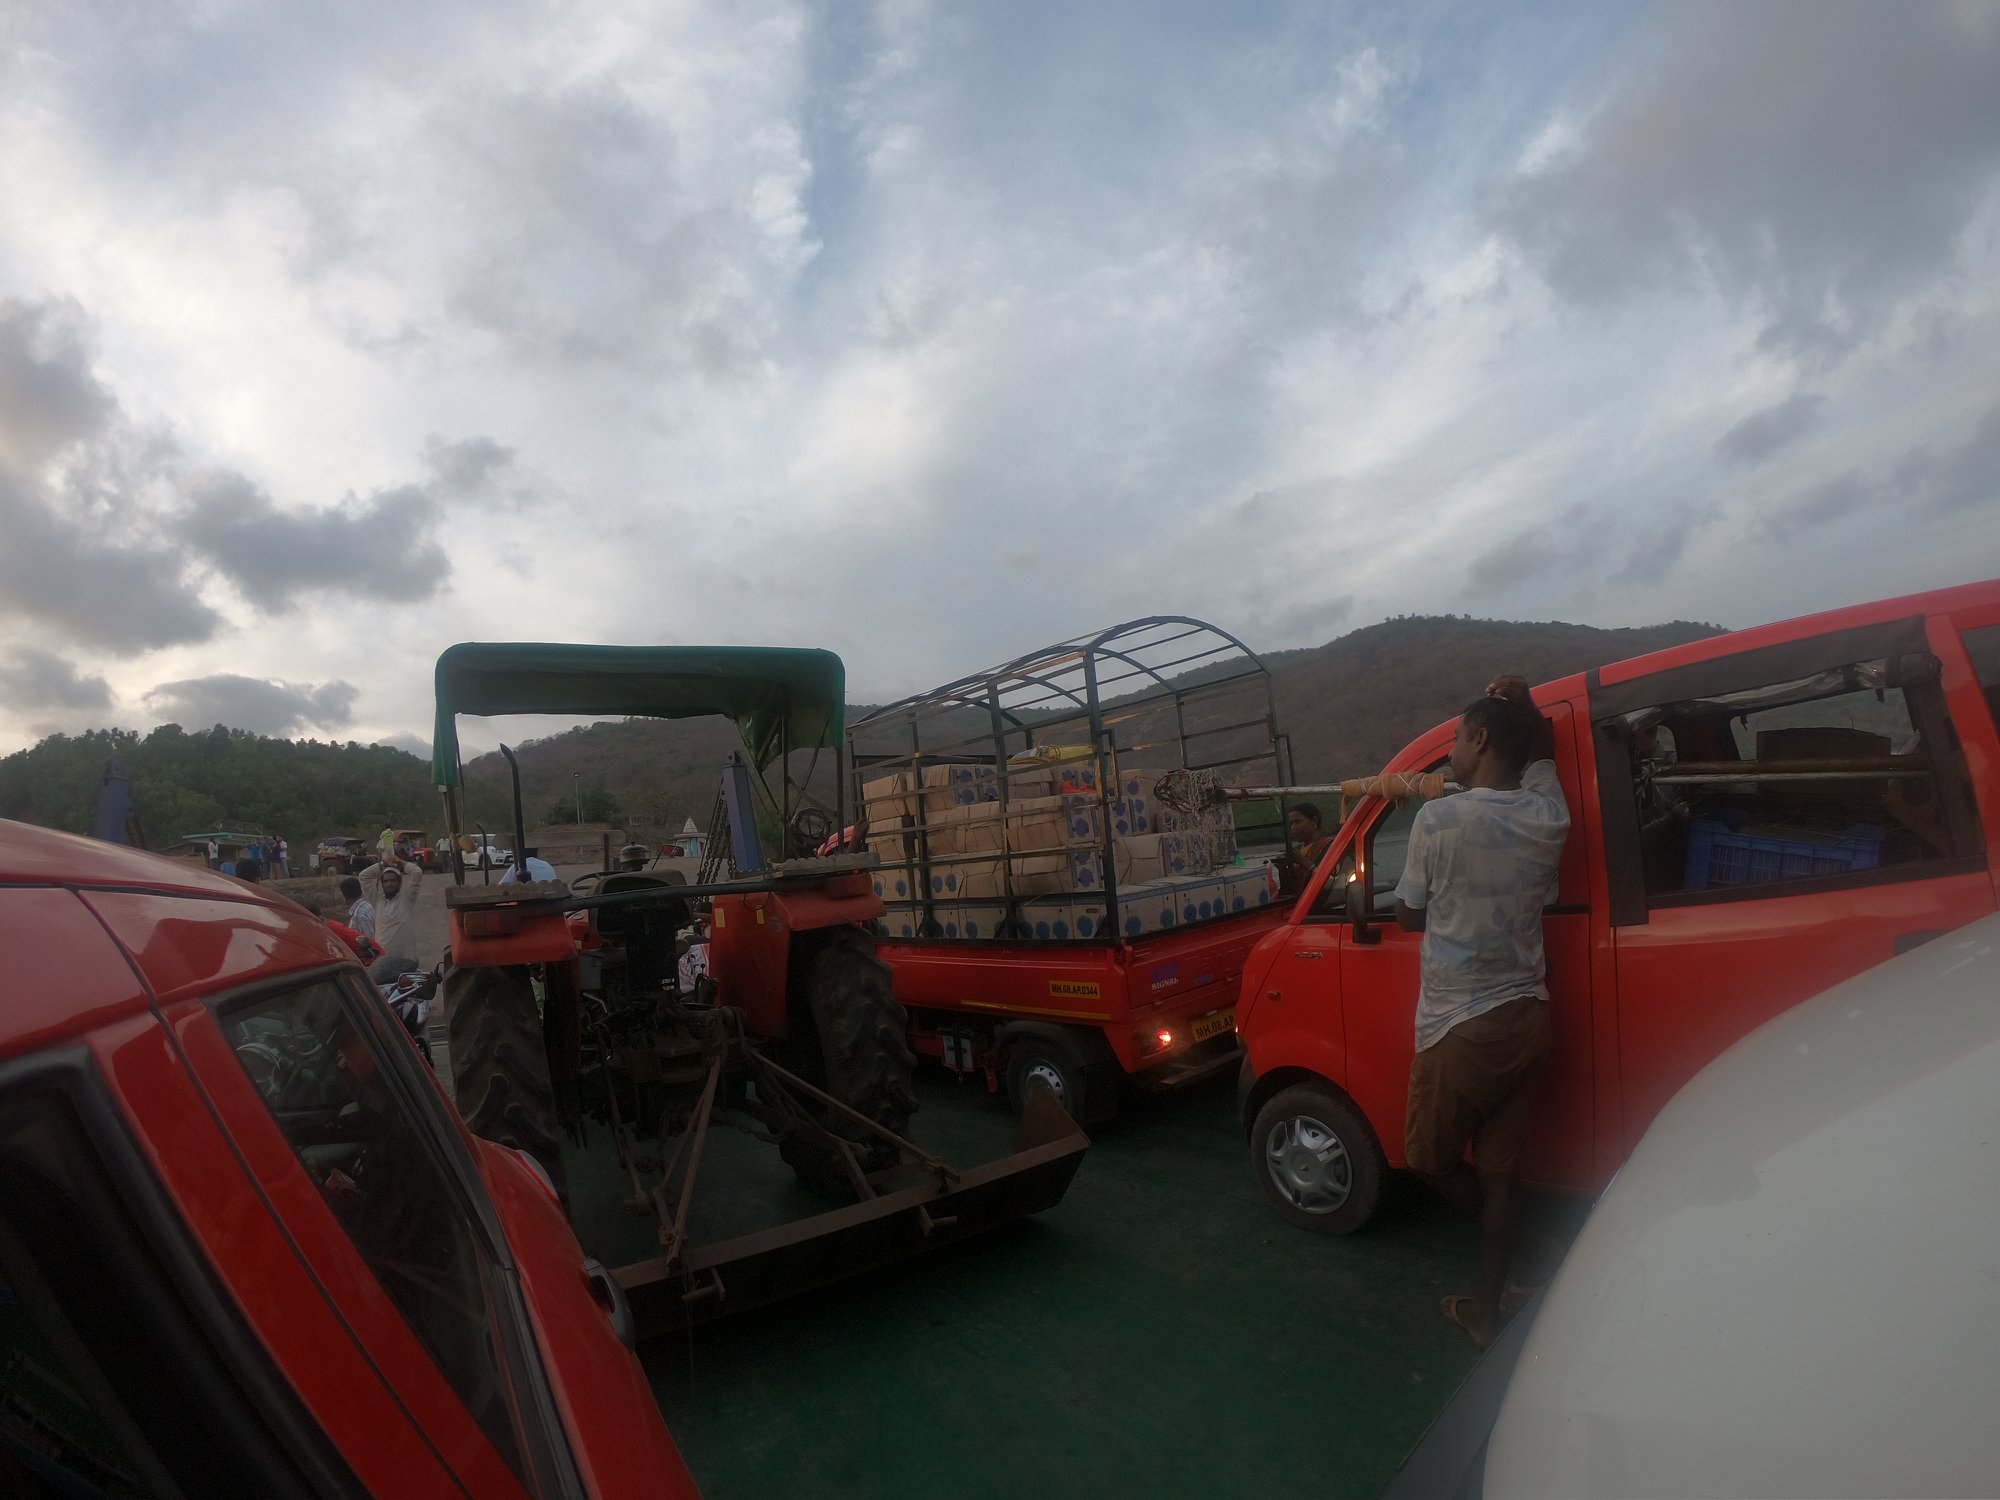 Vehicles behind me and front of me in the Bagmandala Ferry